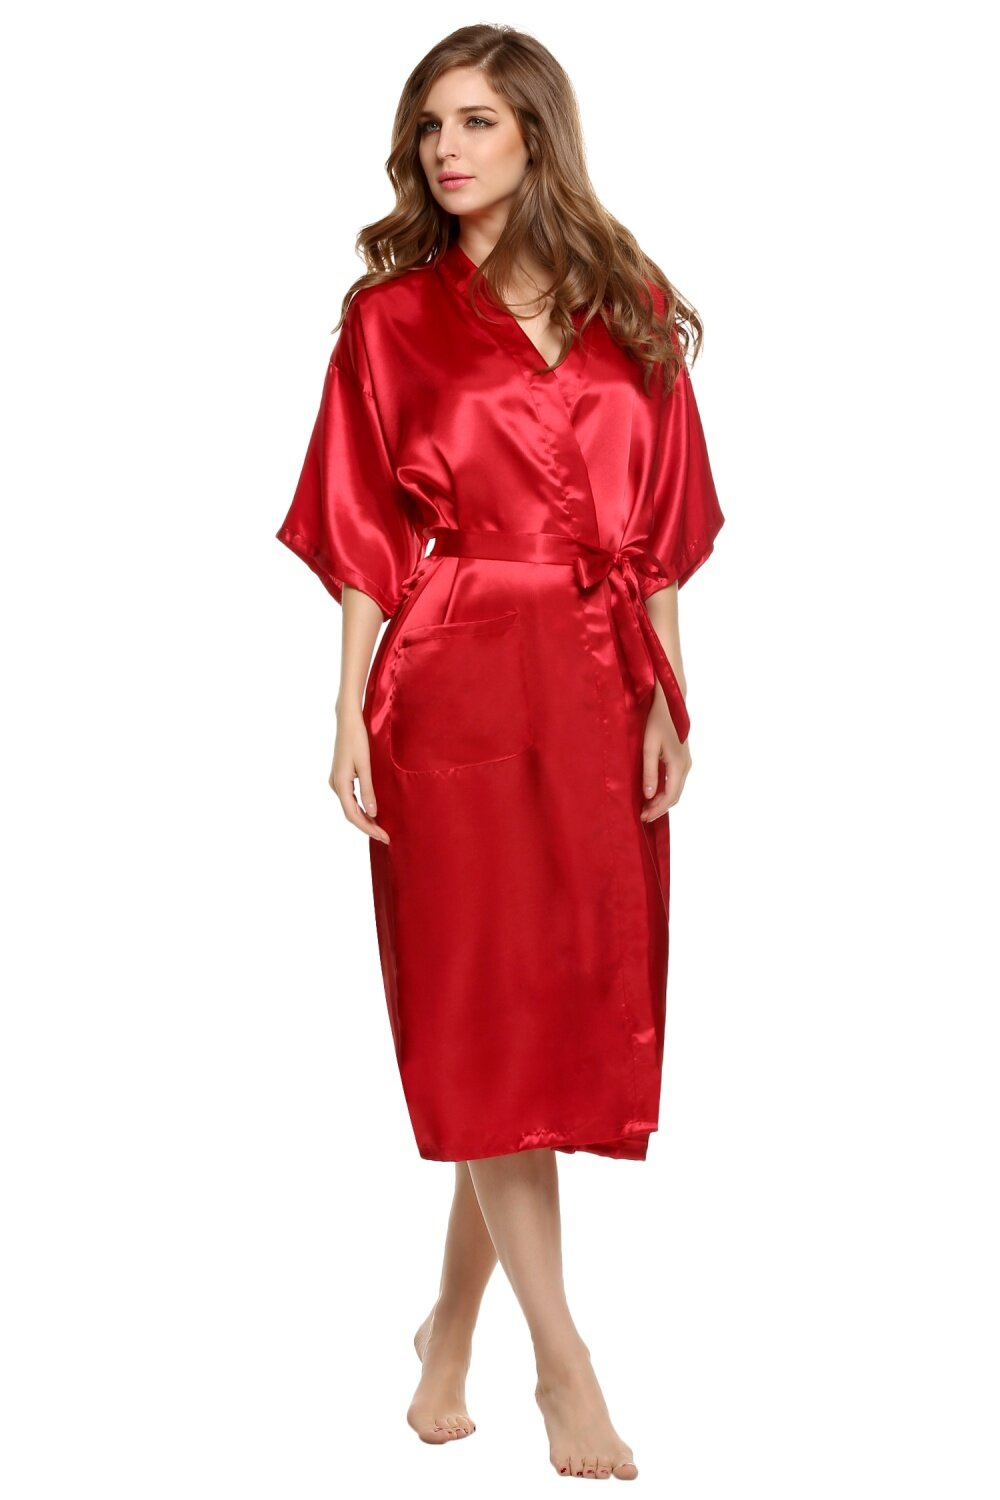 Free shipping on women's sleepwear, pajamas, loungewear, and robes at litastmaterlo.gq Shop for pajamas, nighties, tanks, shorts, joggers, chemises, nightgowns.